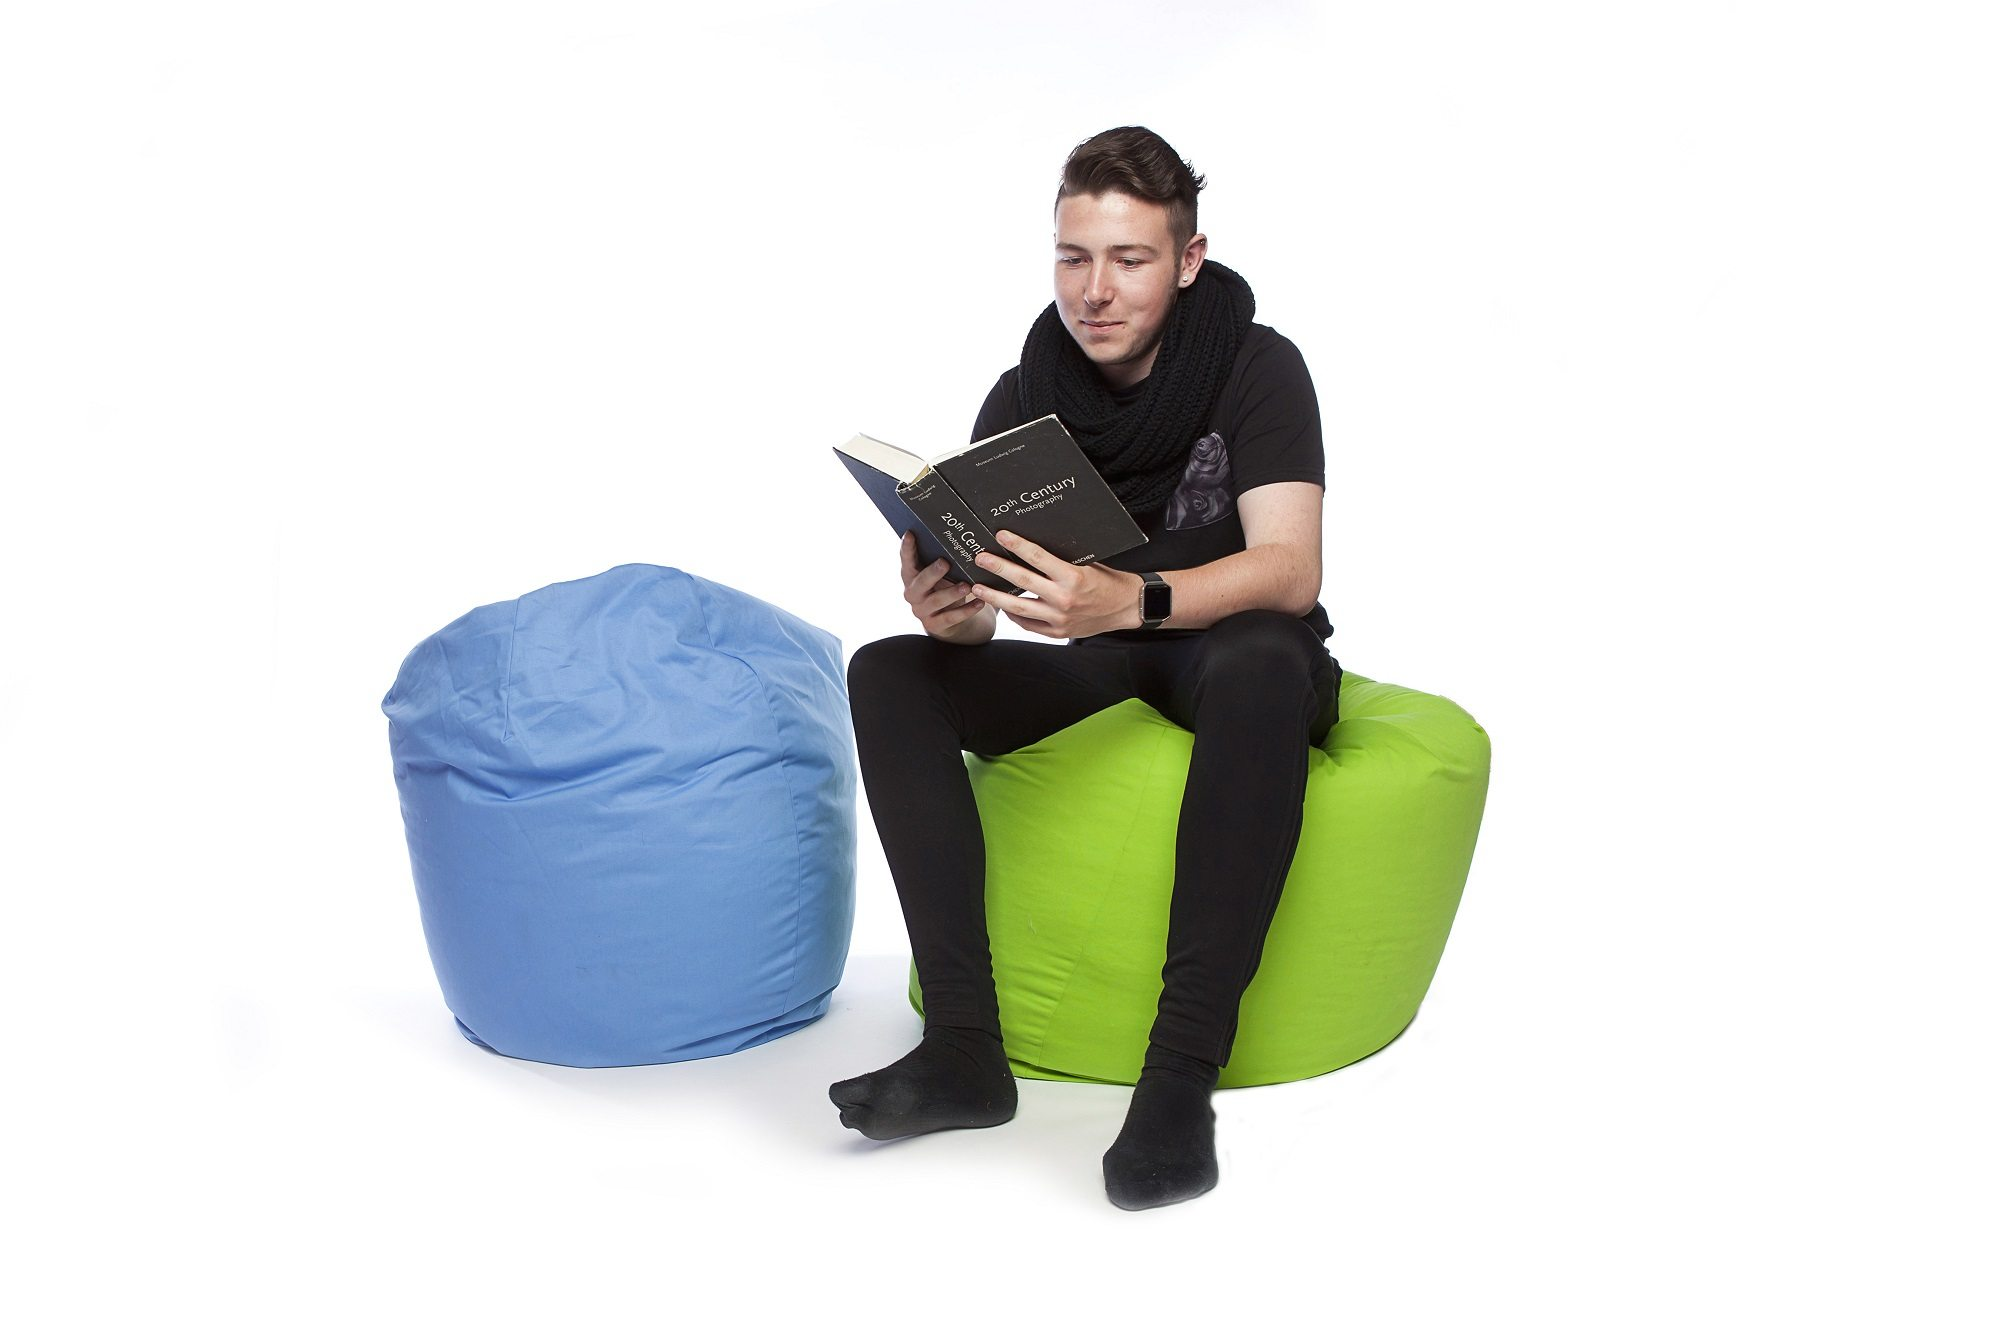 bean bag chairs for teens directors chair outdoor teen cotton uk manufactured buy online today